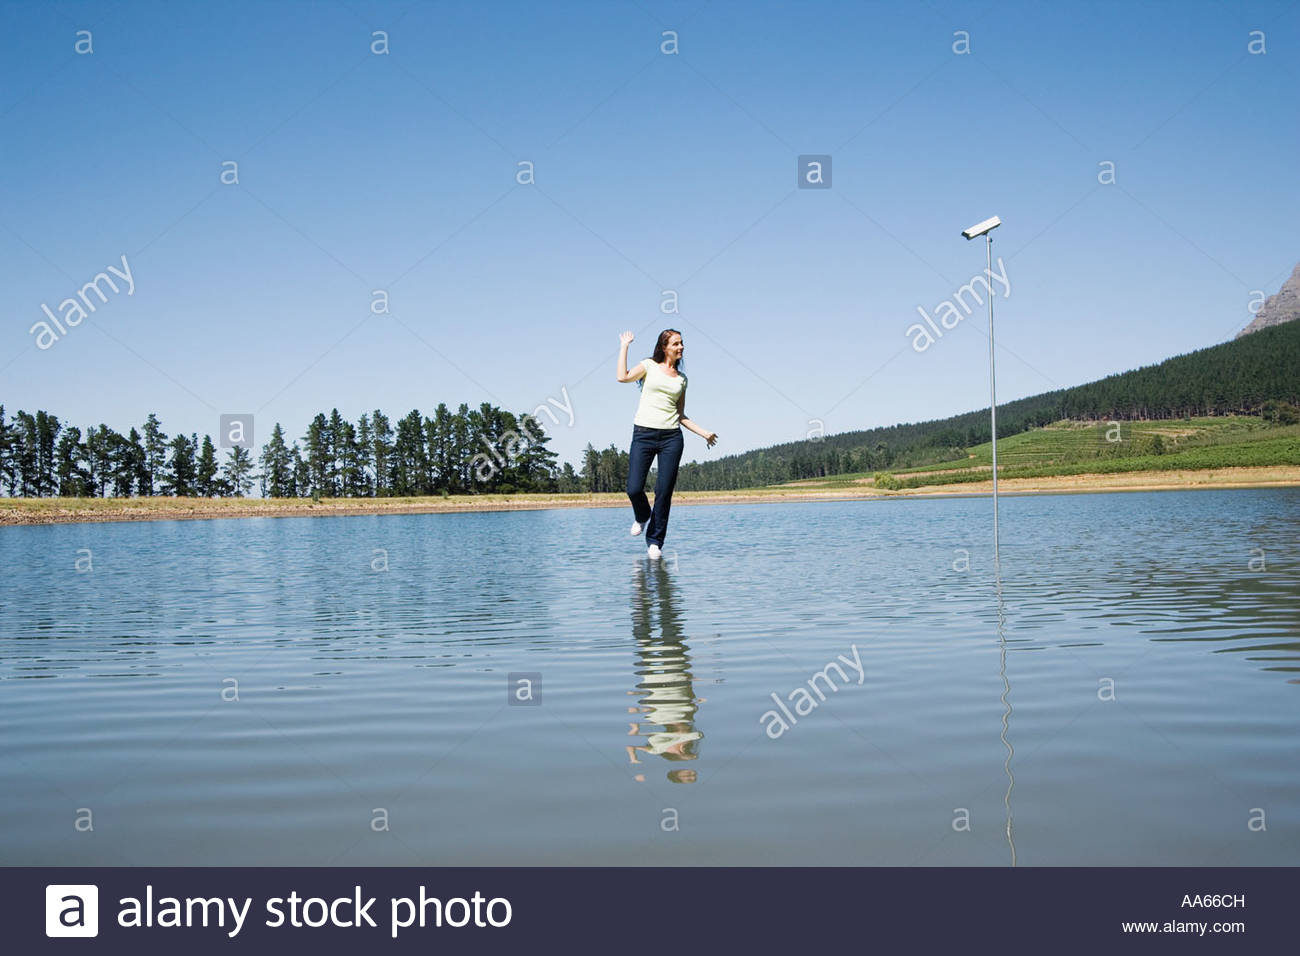 Woman dancing on water with surveillance camera and trees - Stock Image